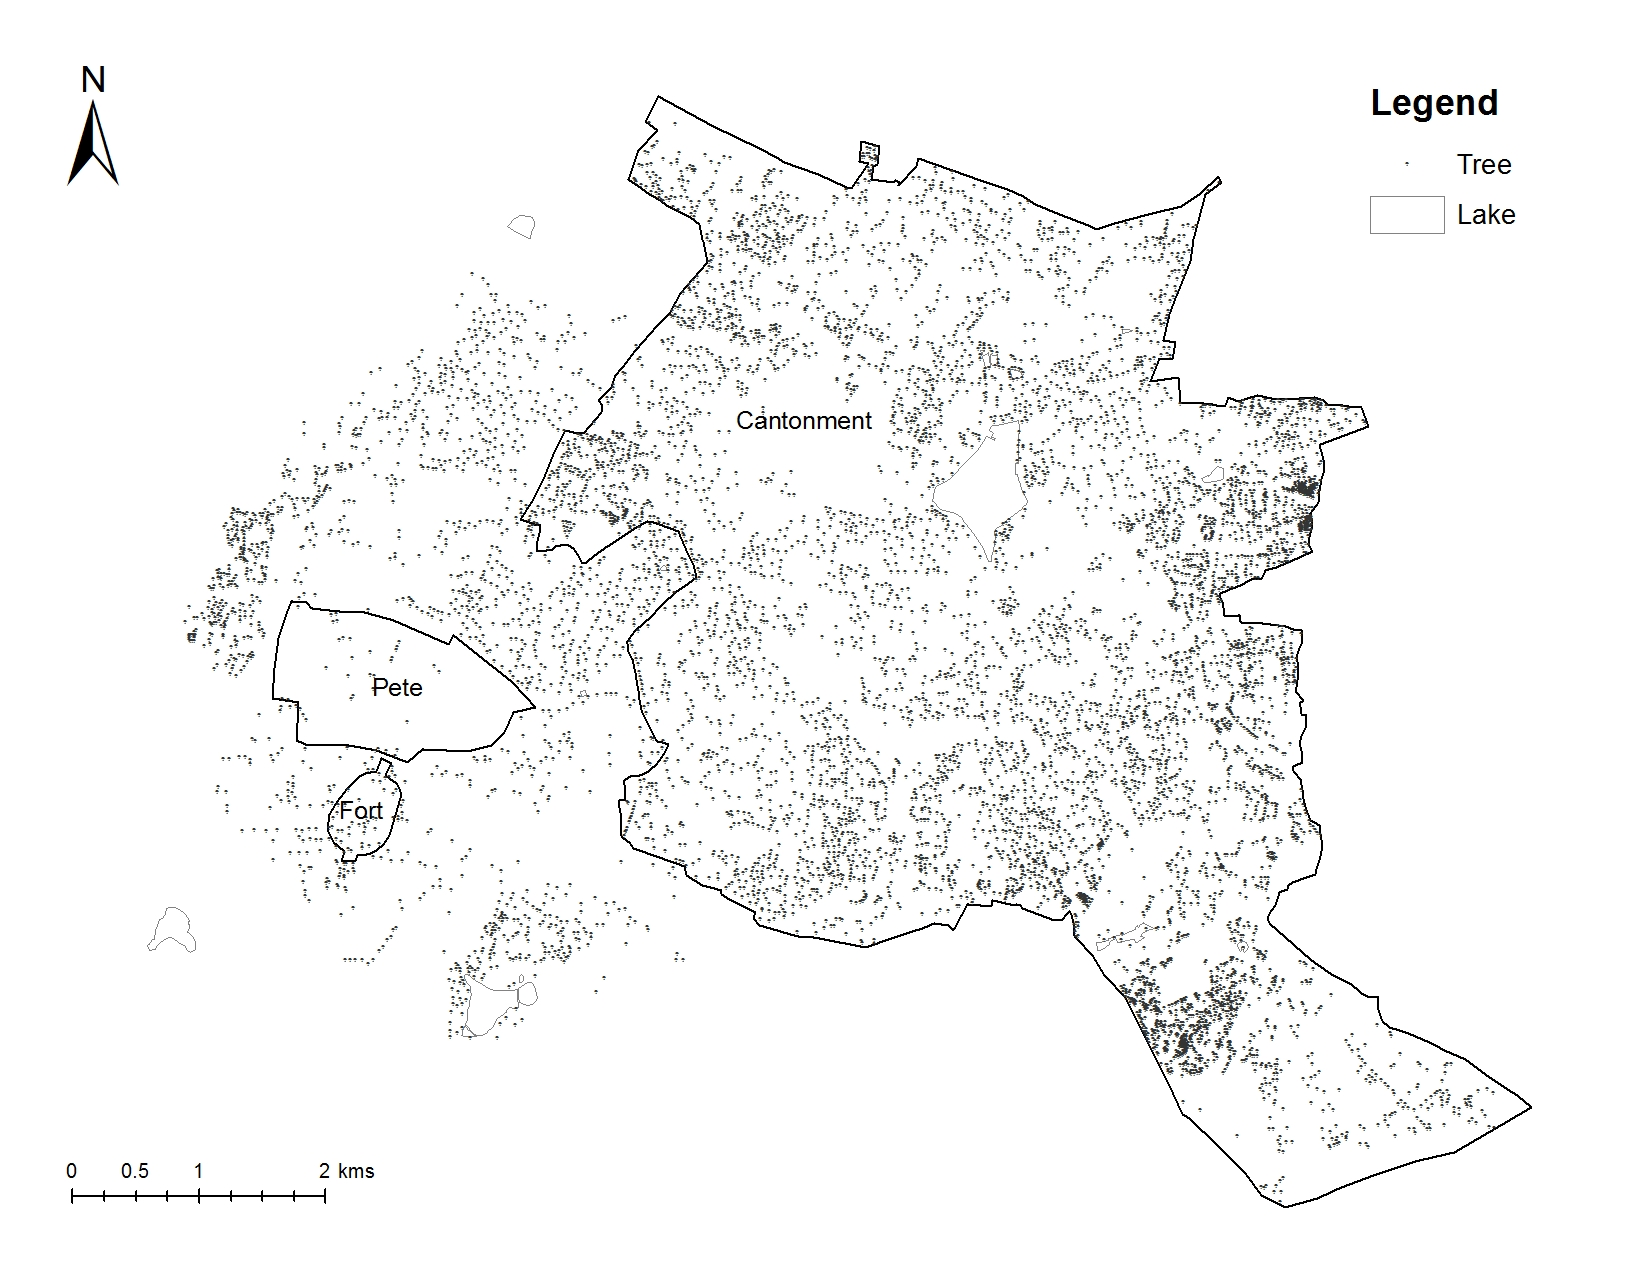 Distribution of trees and lakes in Bengaluru in 2015